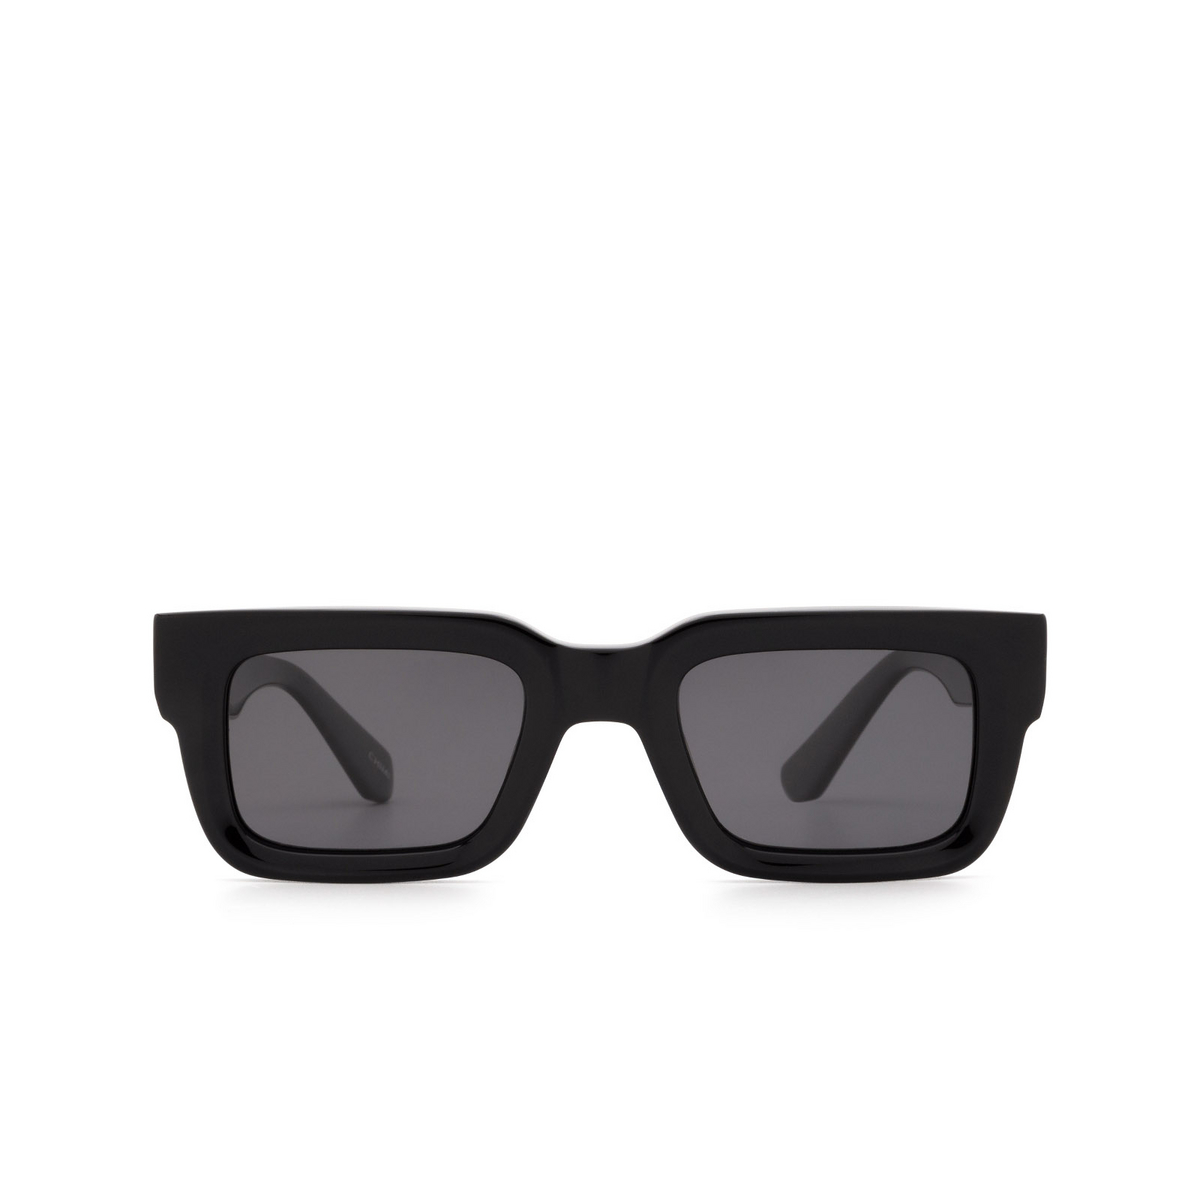 Chimi® Rectangle Sunglasses: 05 color Black - front view.